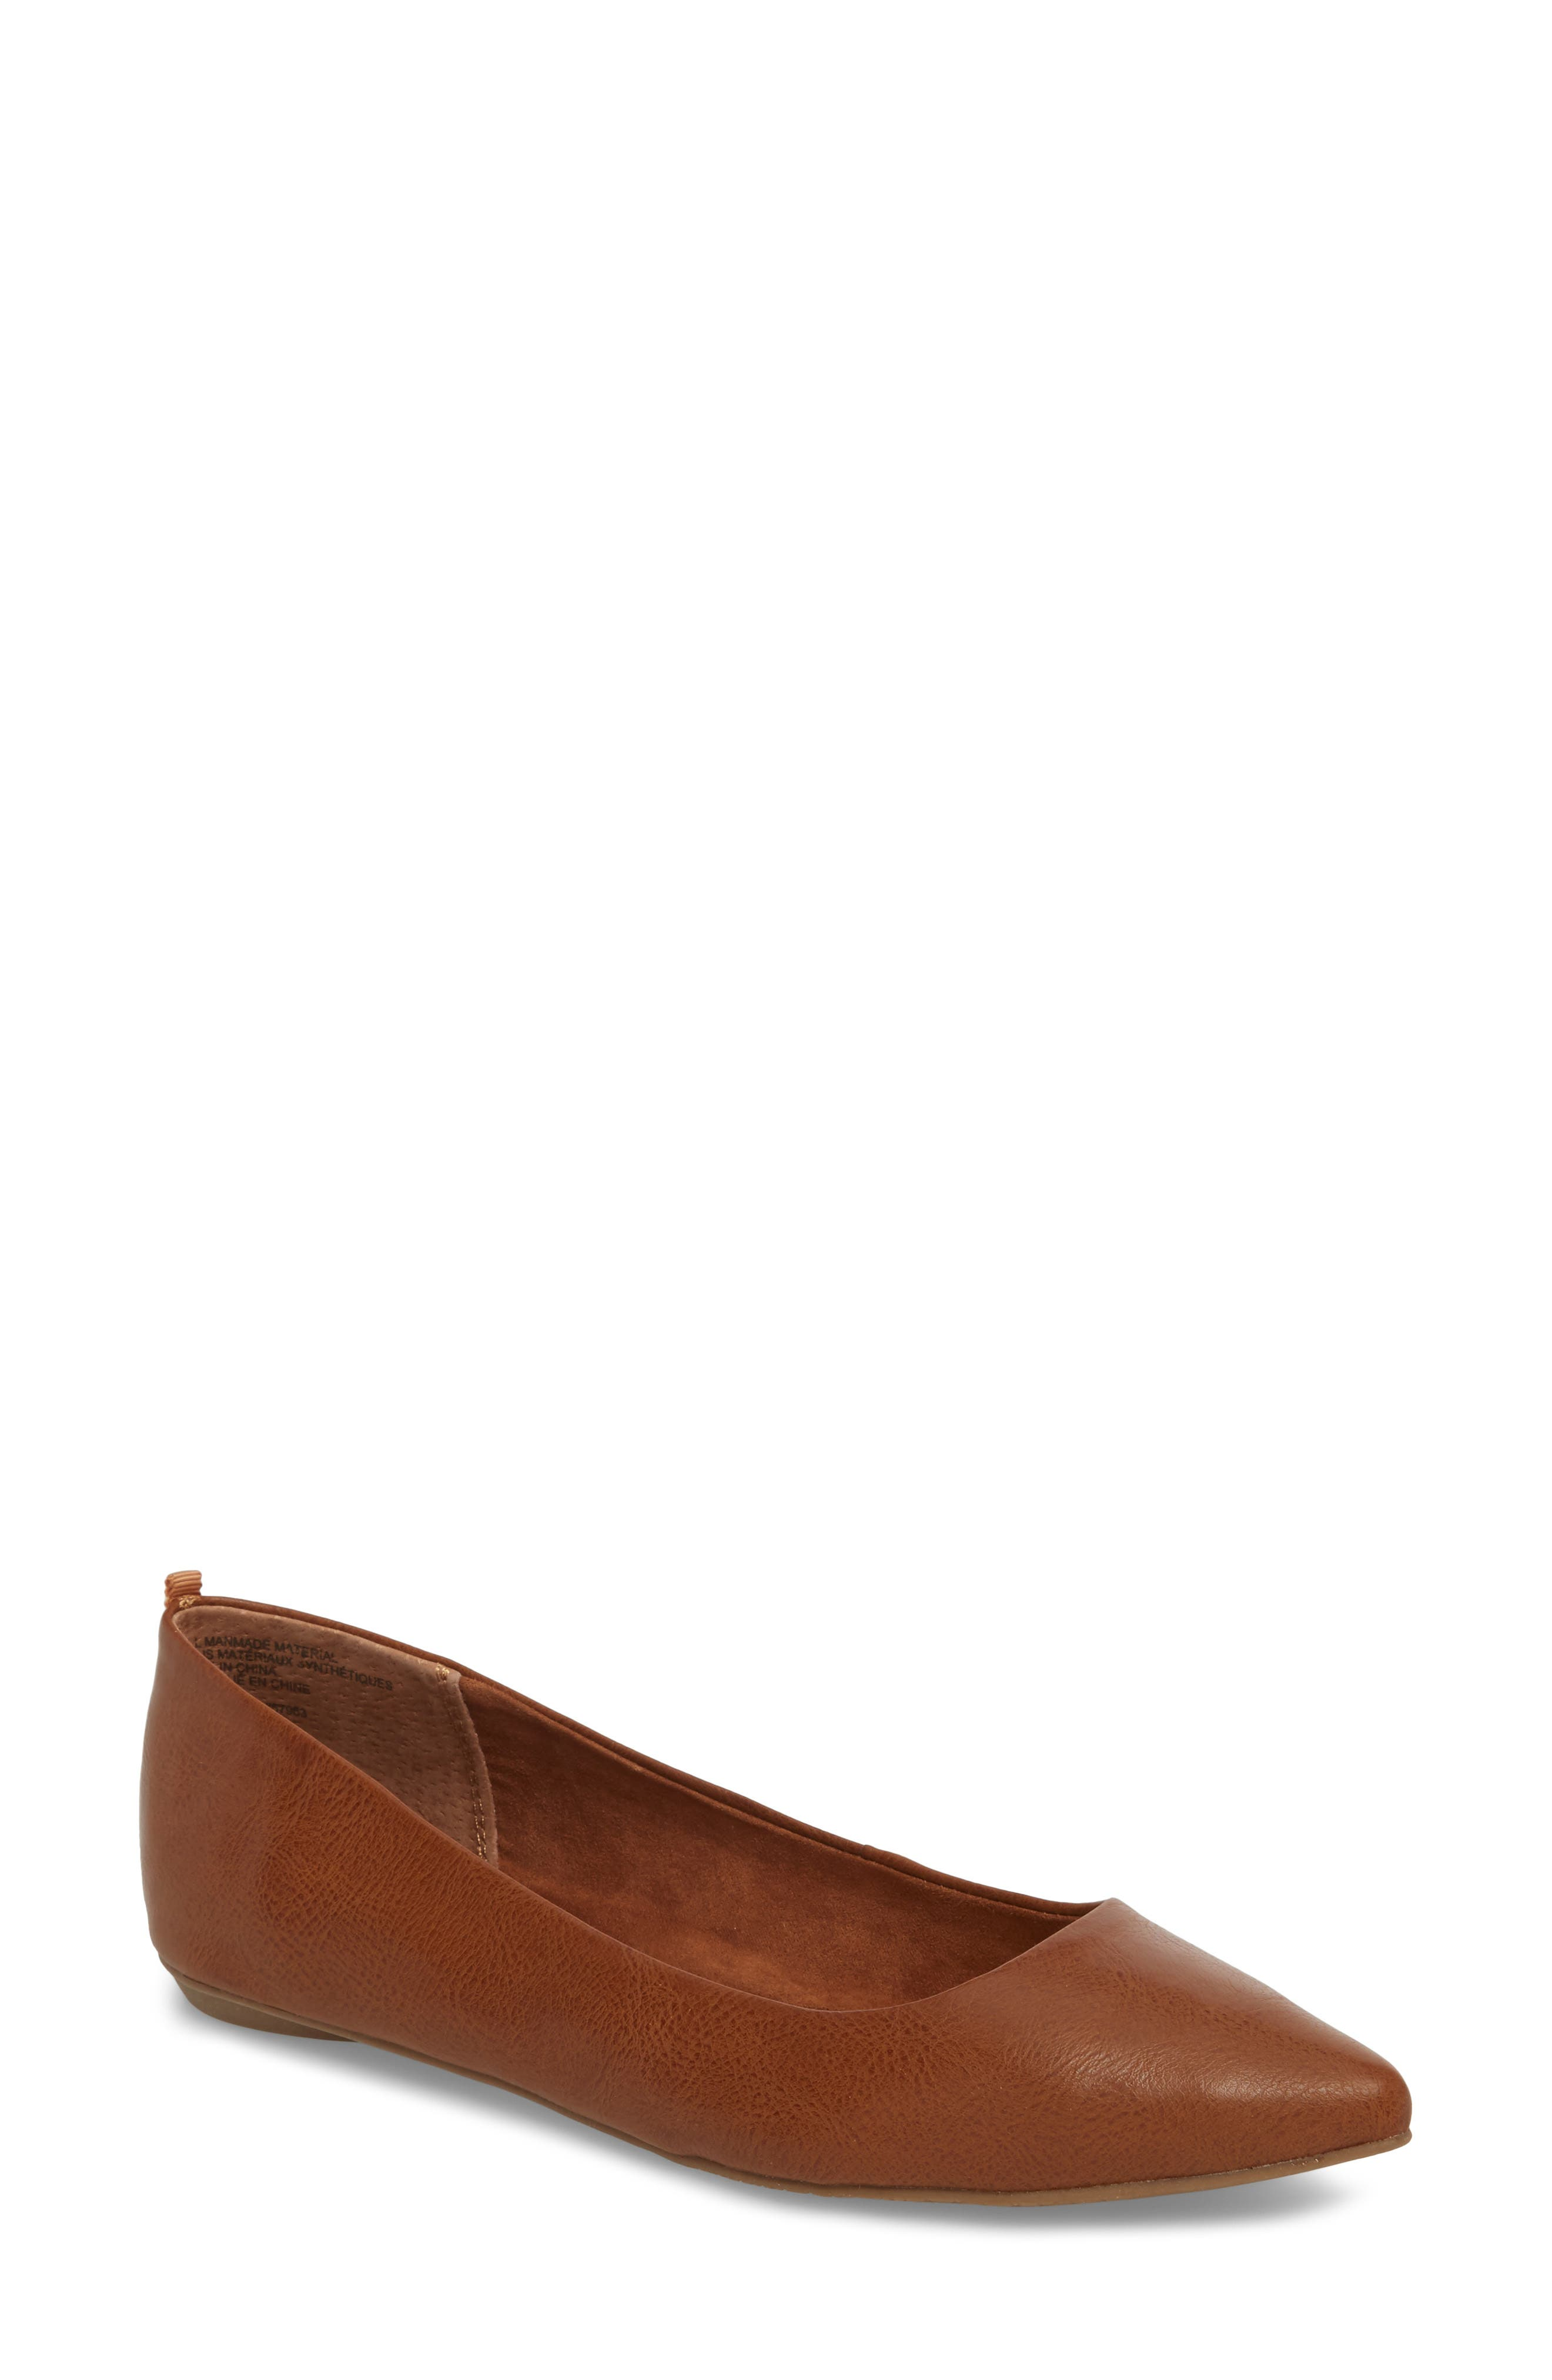 BP., Sasha Flat, Main thumbnail 1, color, COGNAC SMOOTH FAUX LEATHER